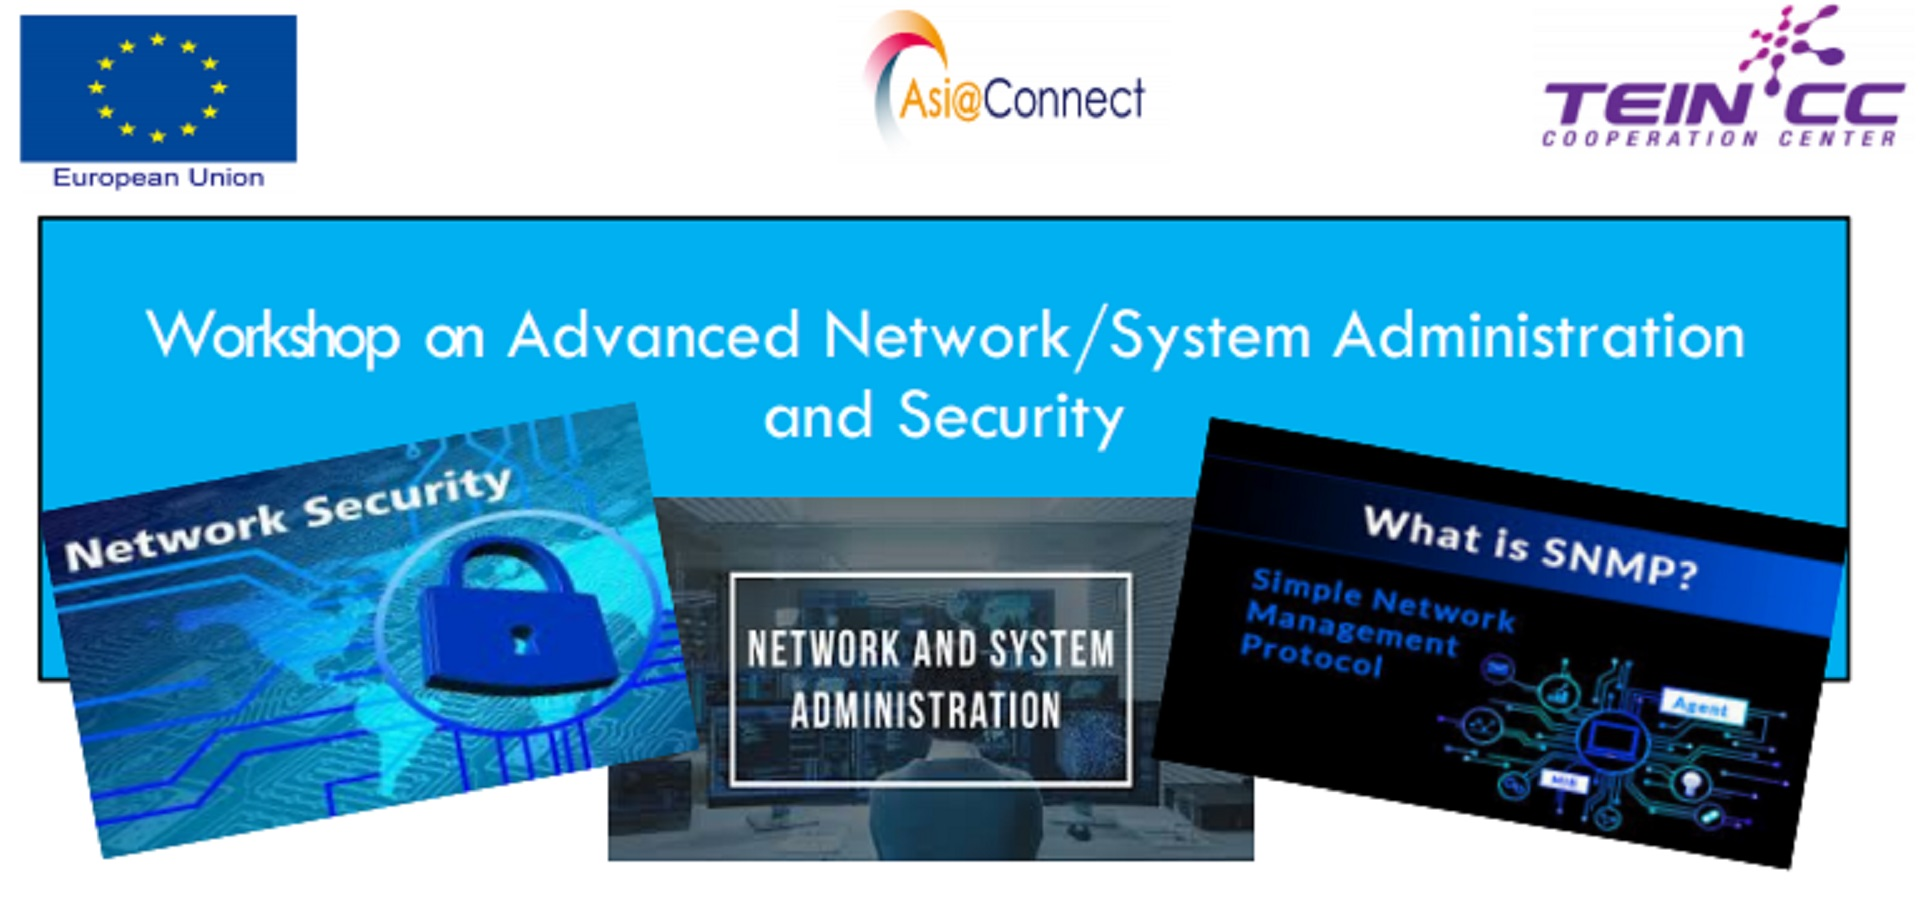 Advanced Network/System Administration and Security